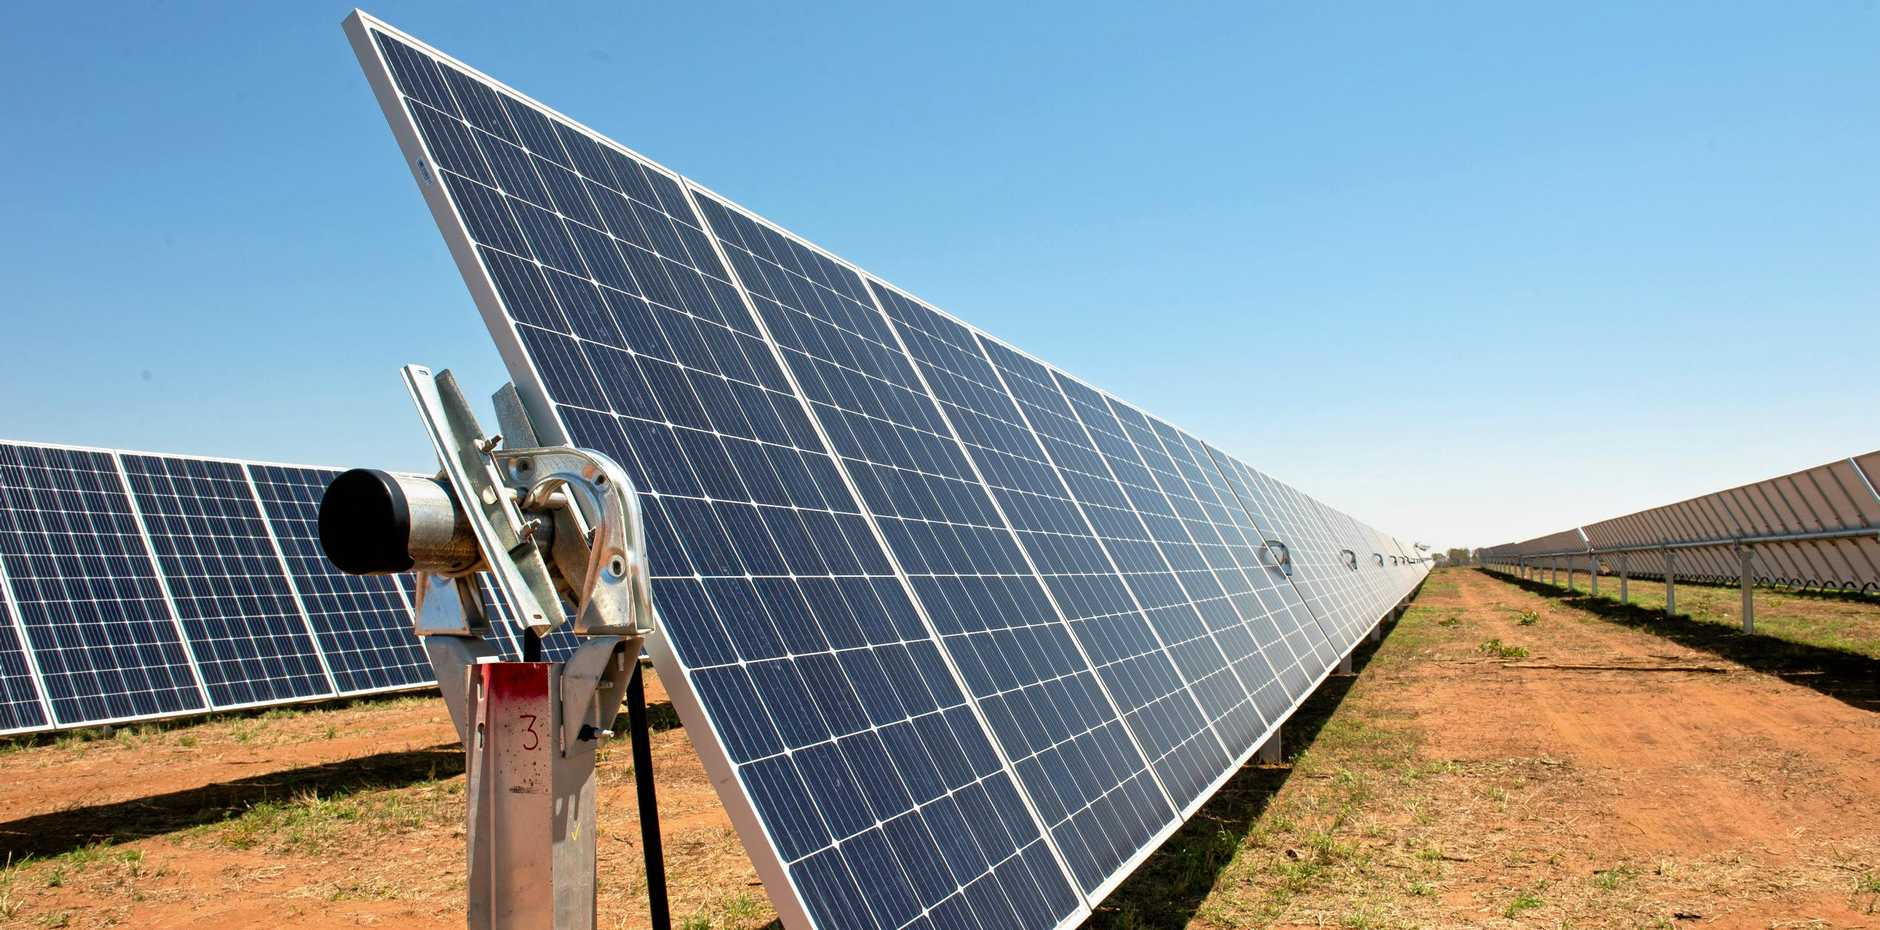 A development application has been submitted to council for an 88 hectare solar farm in Glenella.